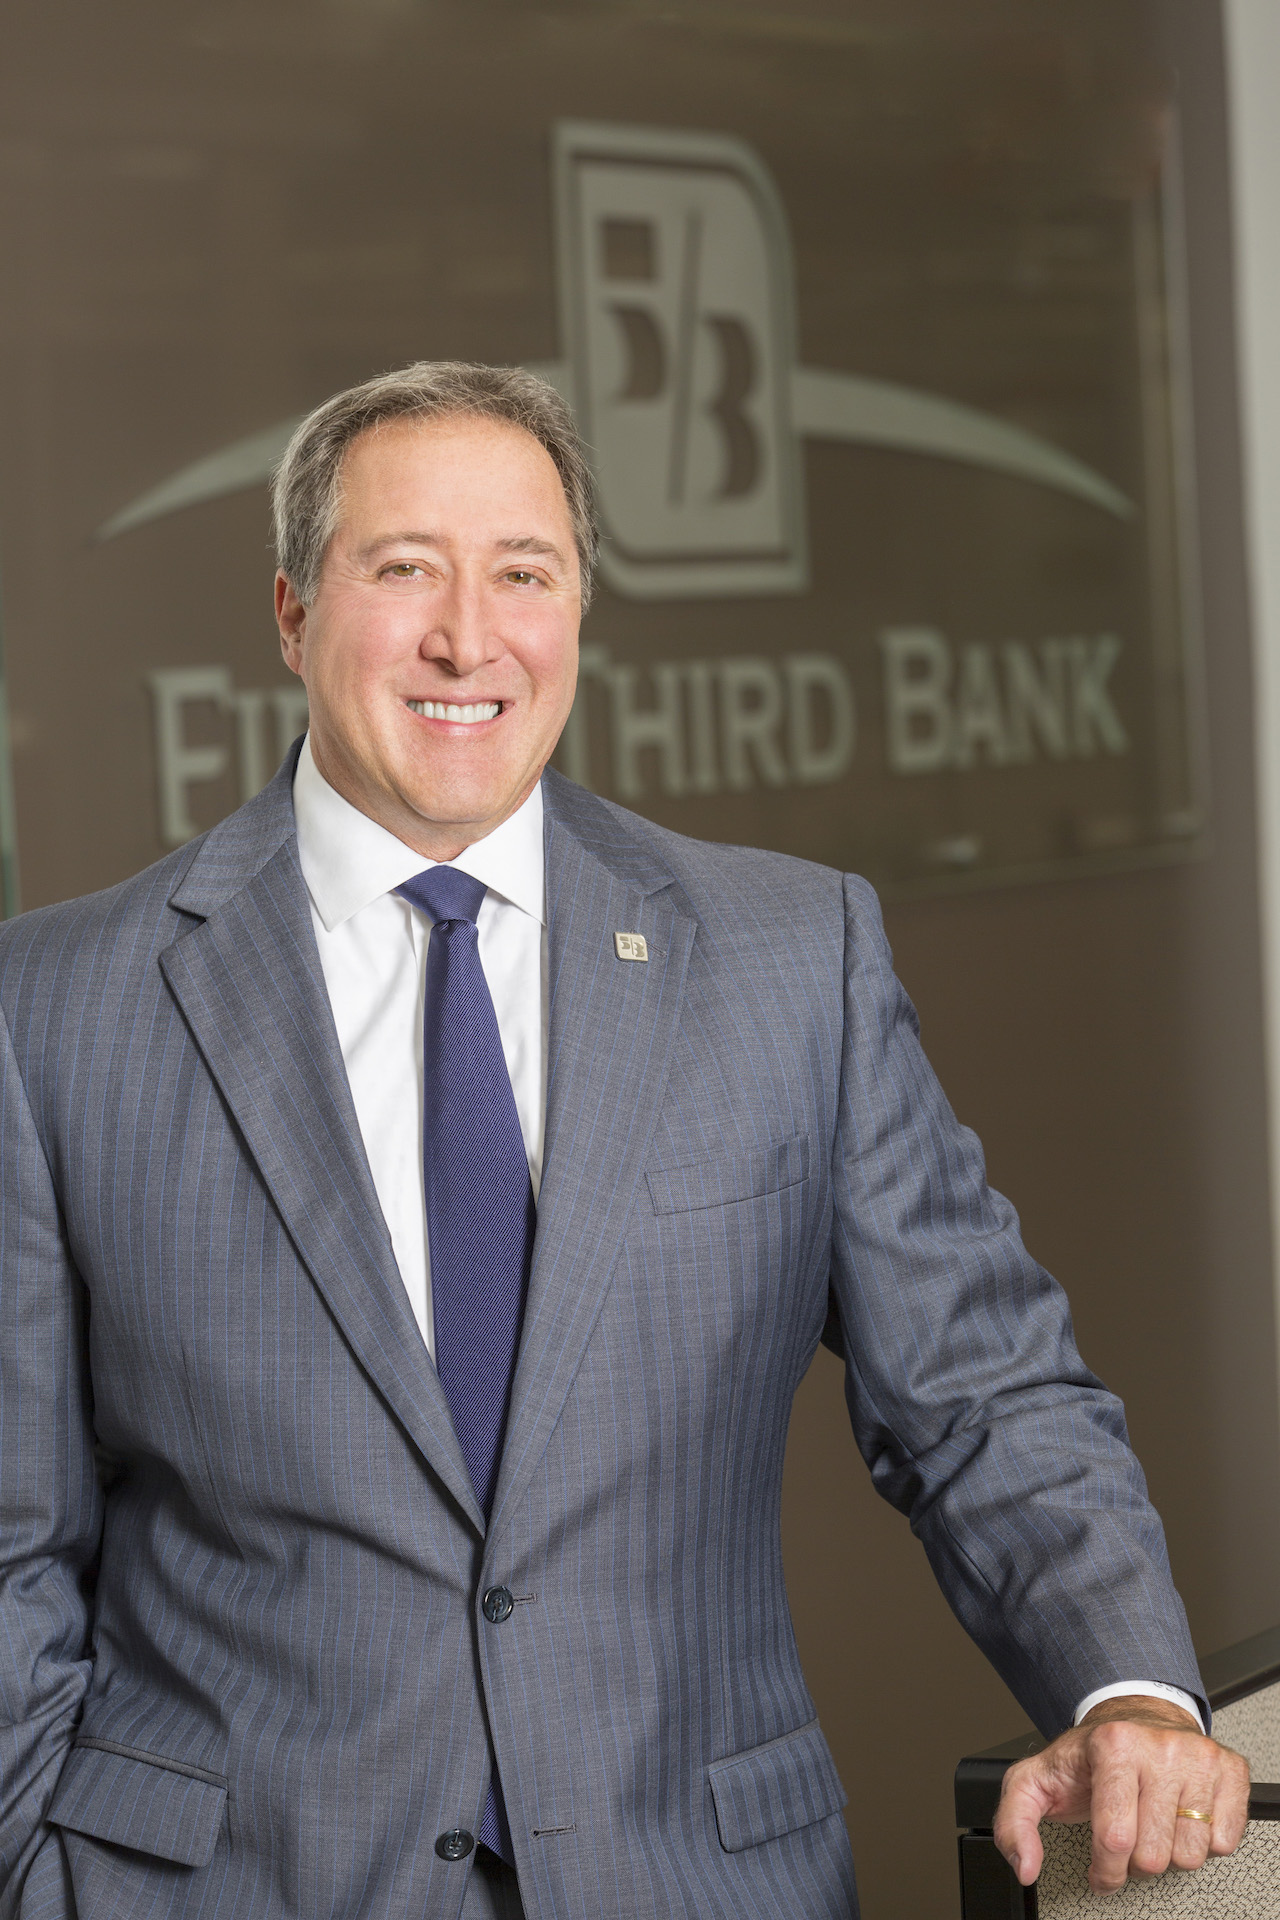 Greg Carmichael, chairman and CEO of Fifth Third Bank